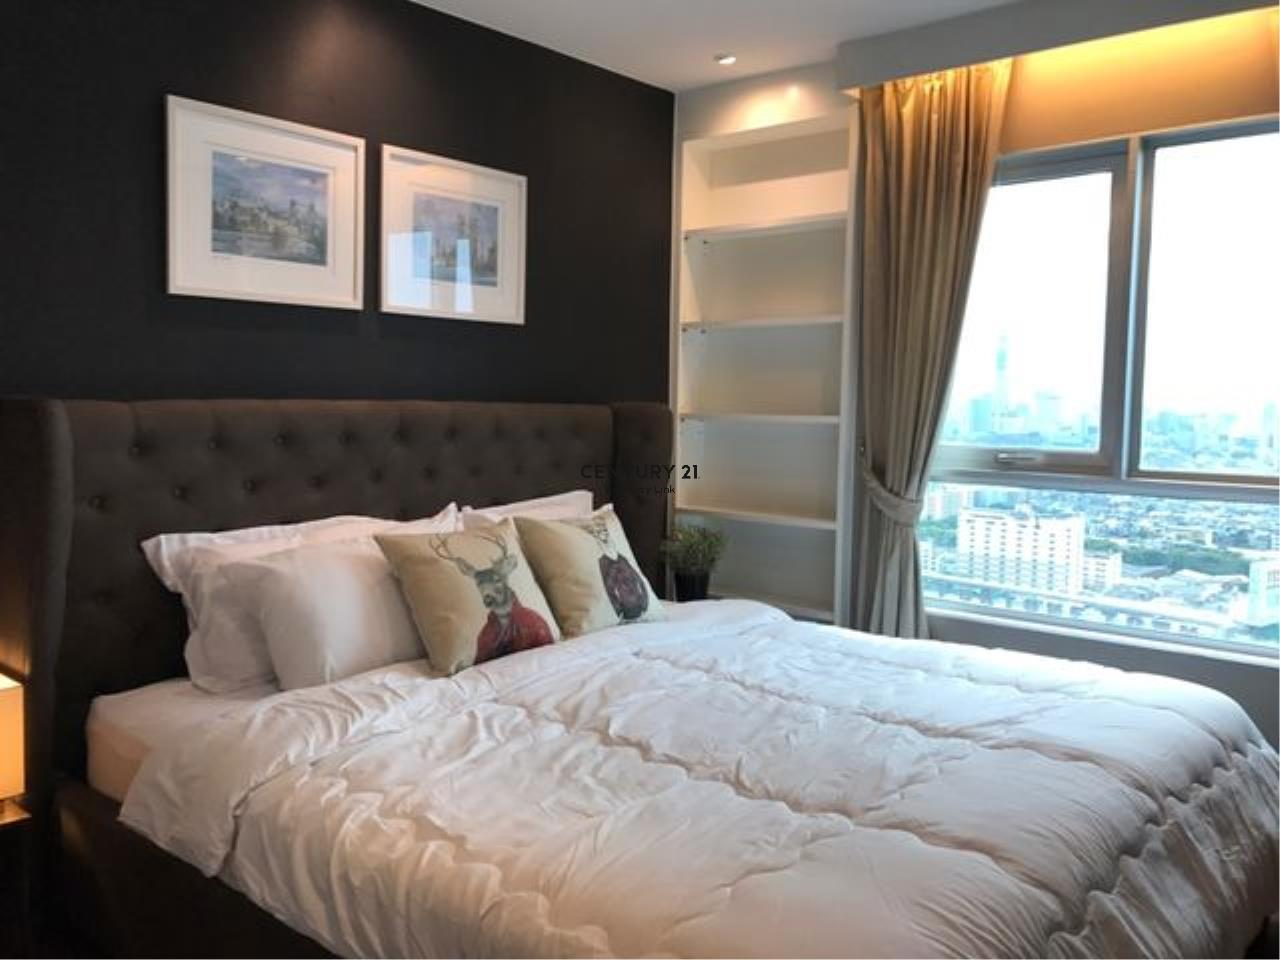 Century21 Property Link Agency's 39-CC-61594 BELLE GRAND RAMA 9 Condo for rent 3 bedrooms BTS RAMA 9 Huai Khwang Rental 89,000 THB./ month 2